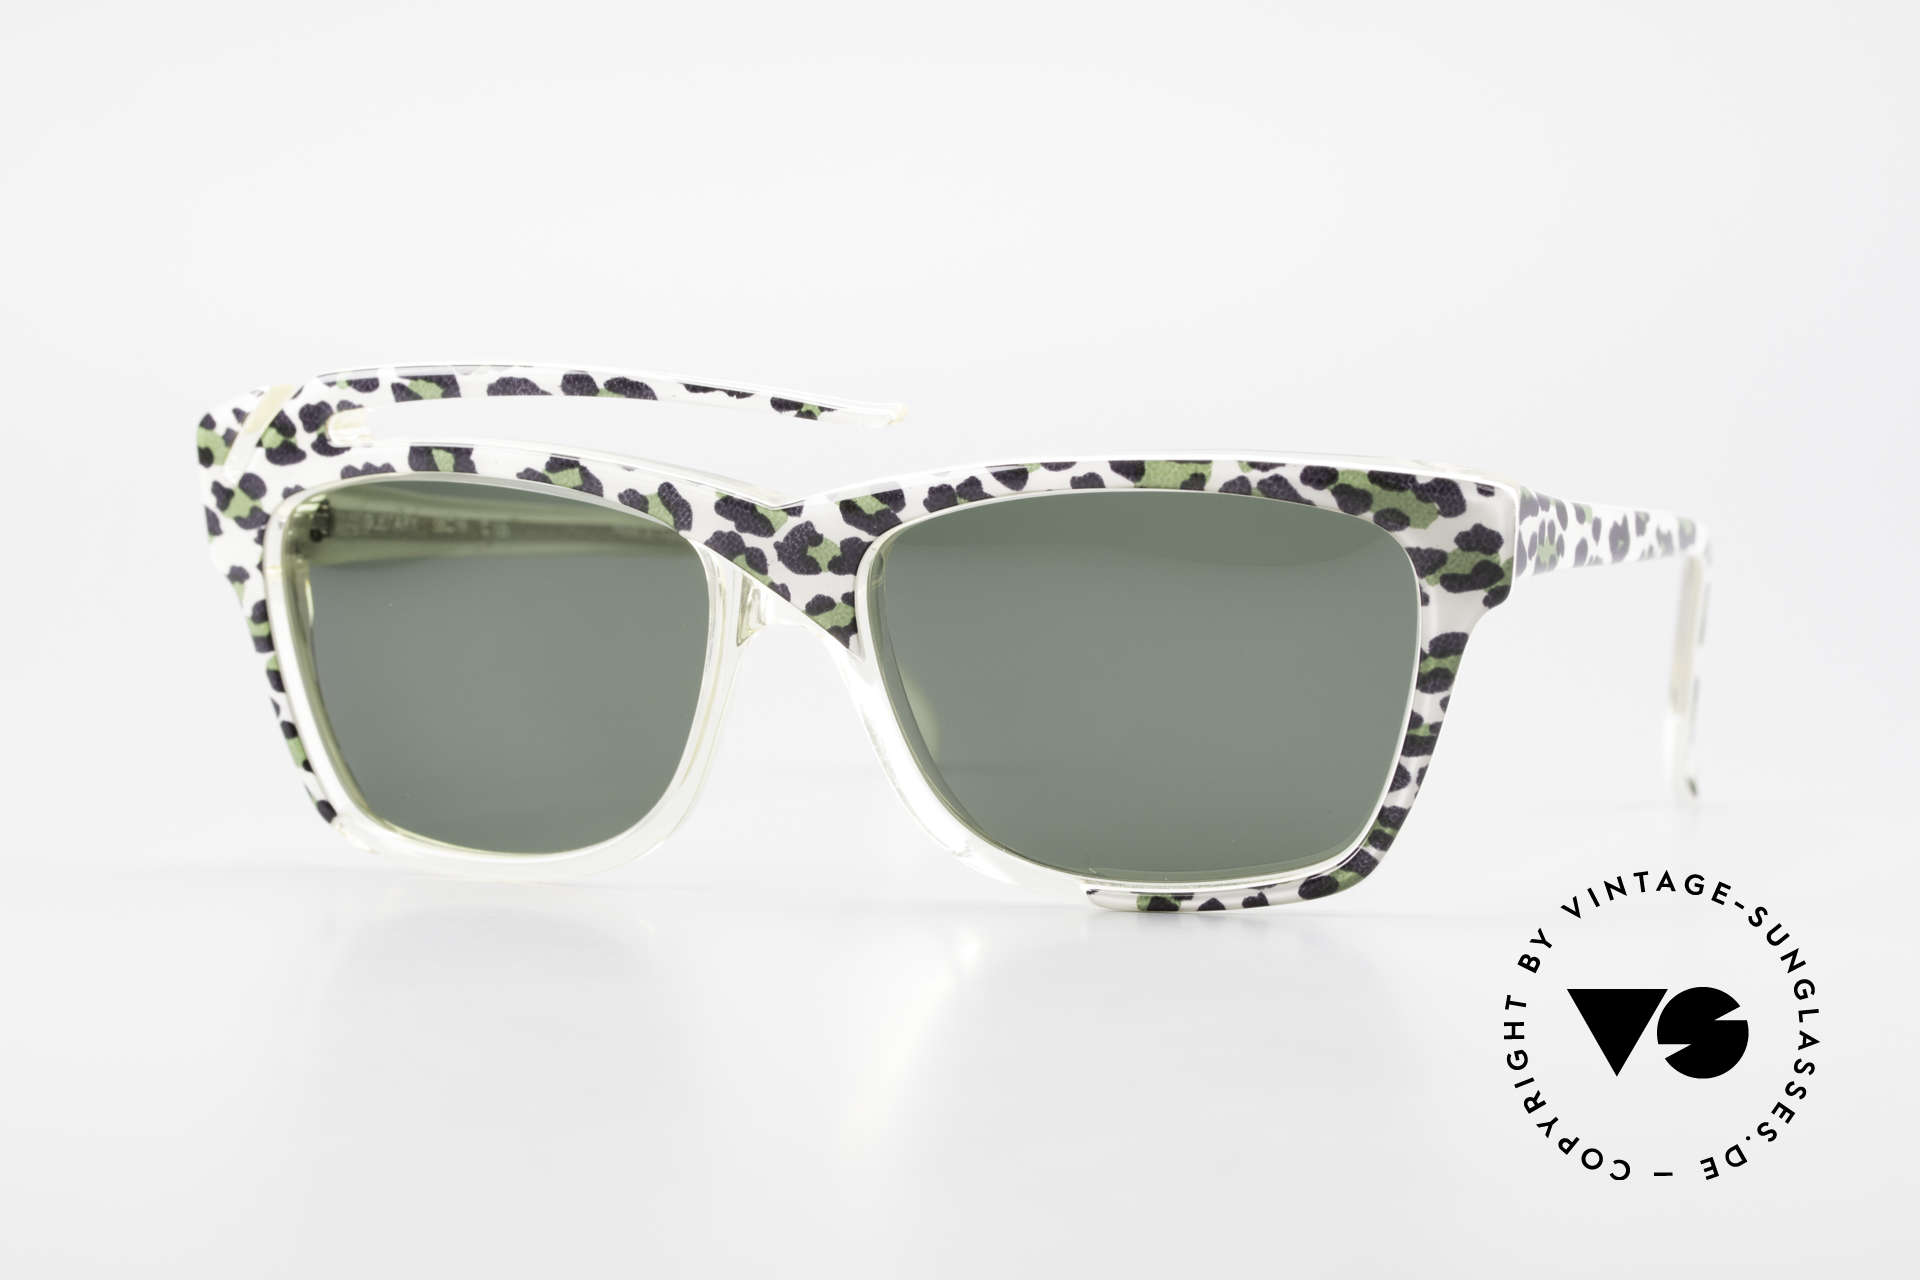 Gerard Levet Guetary A Tribute To Feminity, vintage 'Eye-Catcher' sunglasses by Gérard Levet, Made for Women